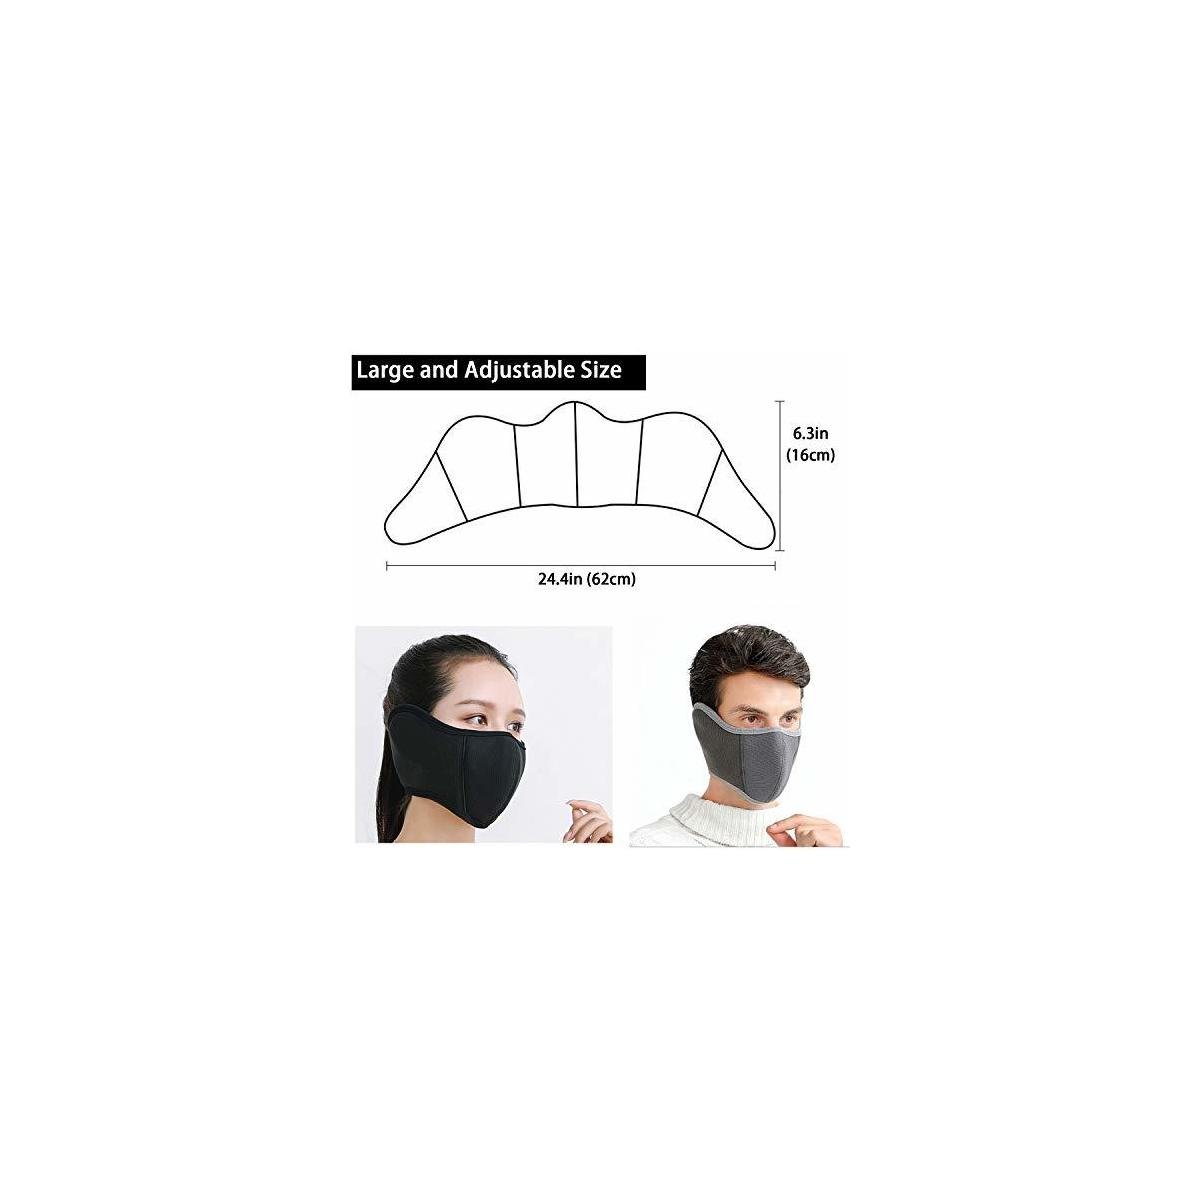 E-jades Winter Face Mask for Men Women Half Face Airsoft Fleece ski Mask Warmer Balaclava Protect Nose, Mouth, Ears Adjustable Earmuffs for Cold Weather,Outdoor Running,Cycling,Skiing,Snowboard-2Pack